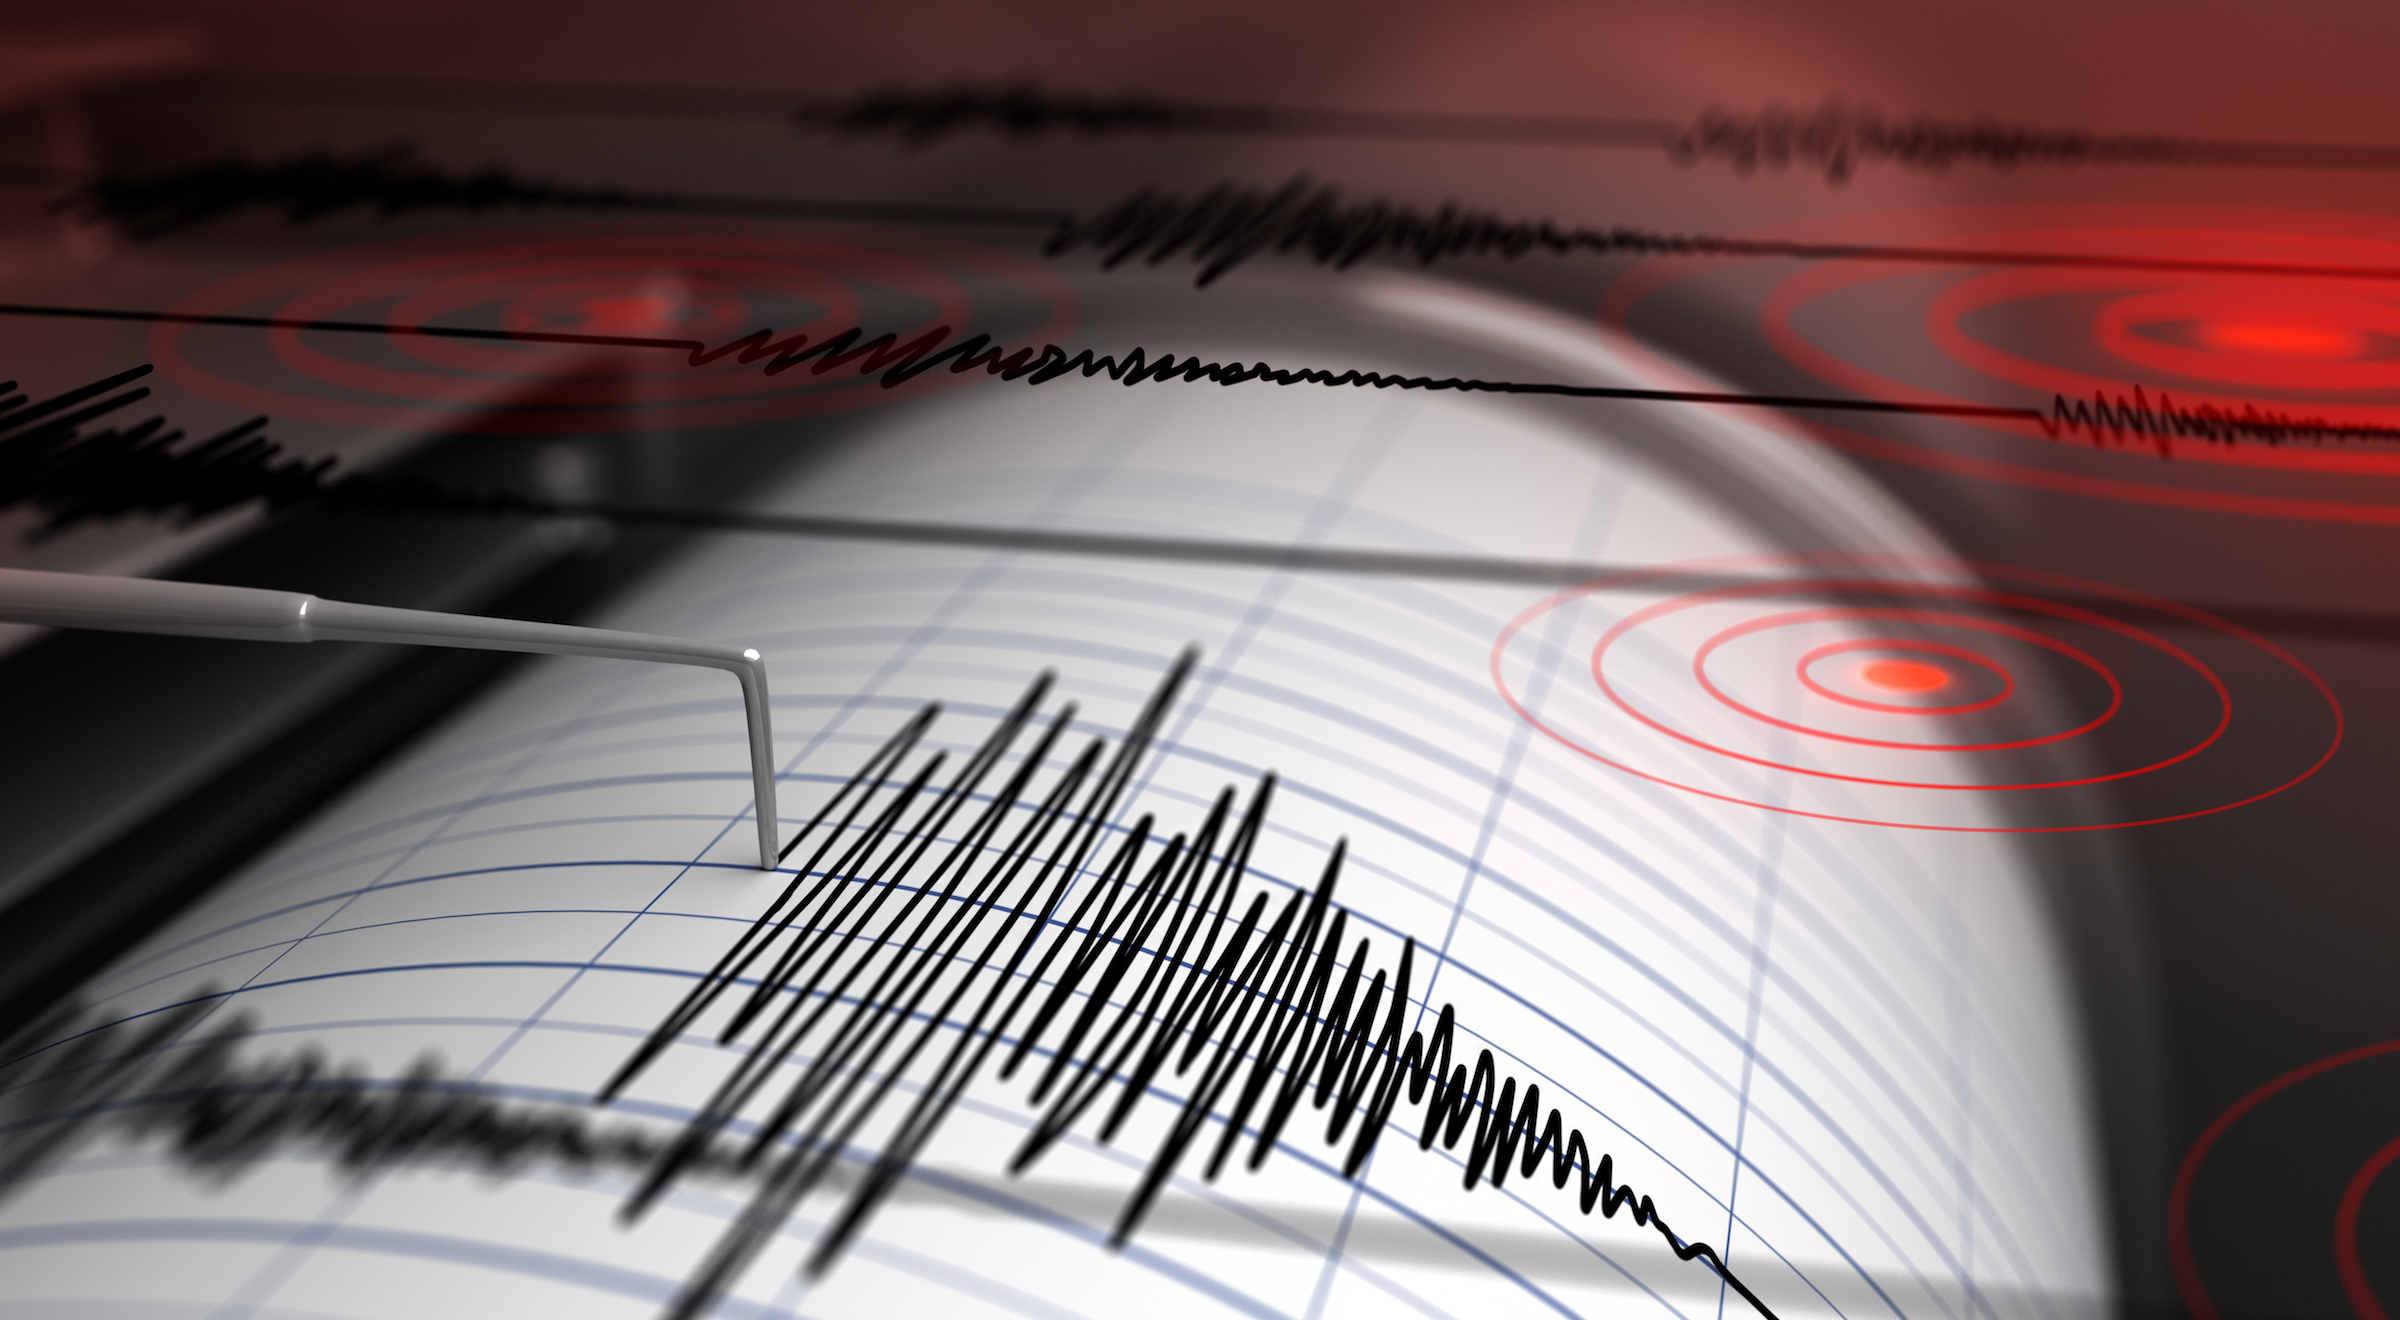 The after-effects of an earthquake observed through seismic readings are not necessarily the same as when observed by orbiting satellites.